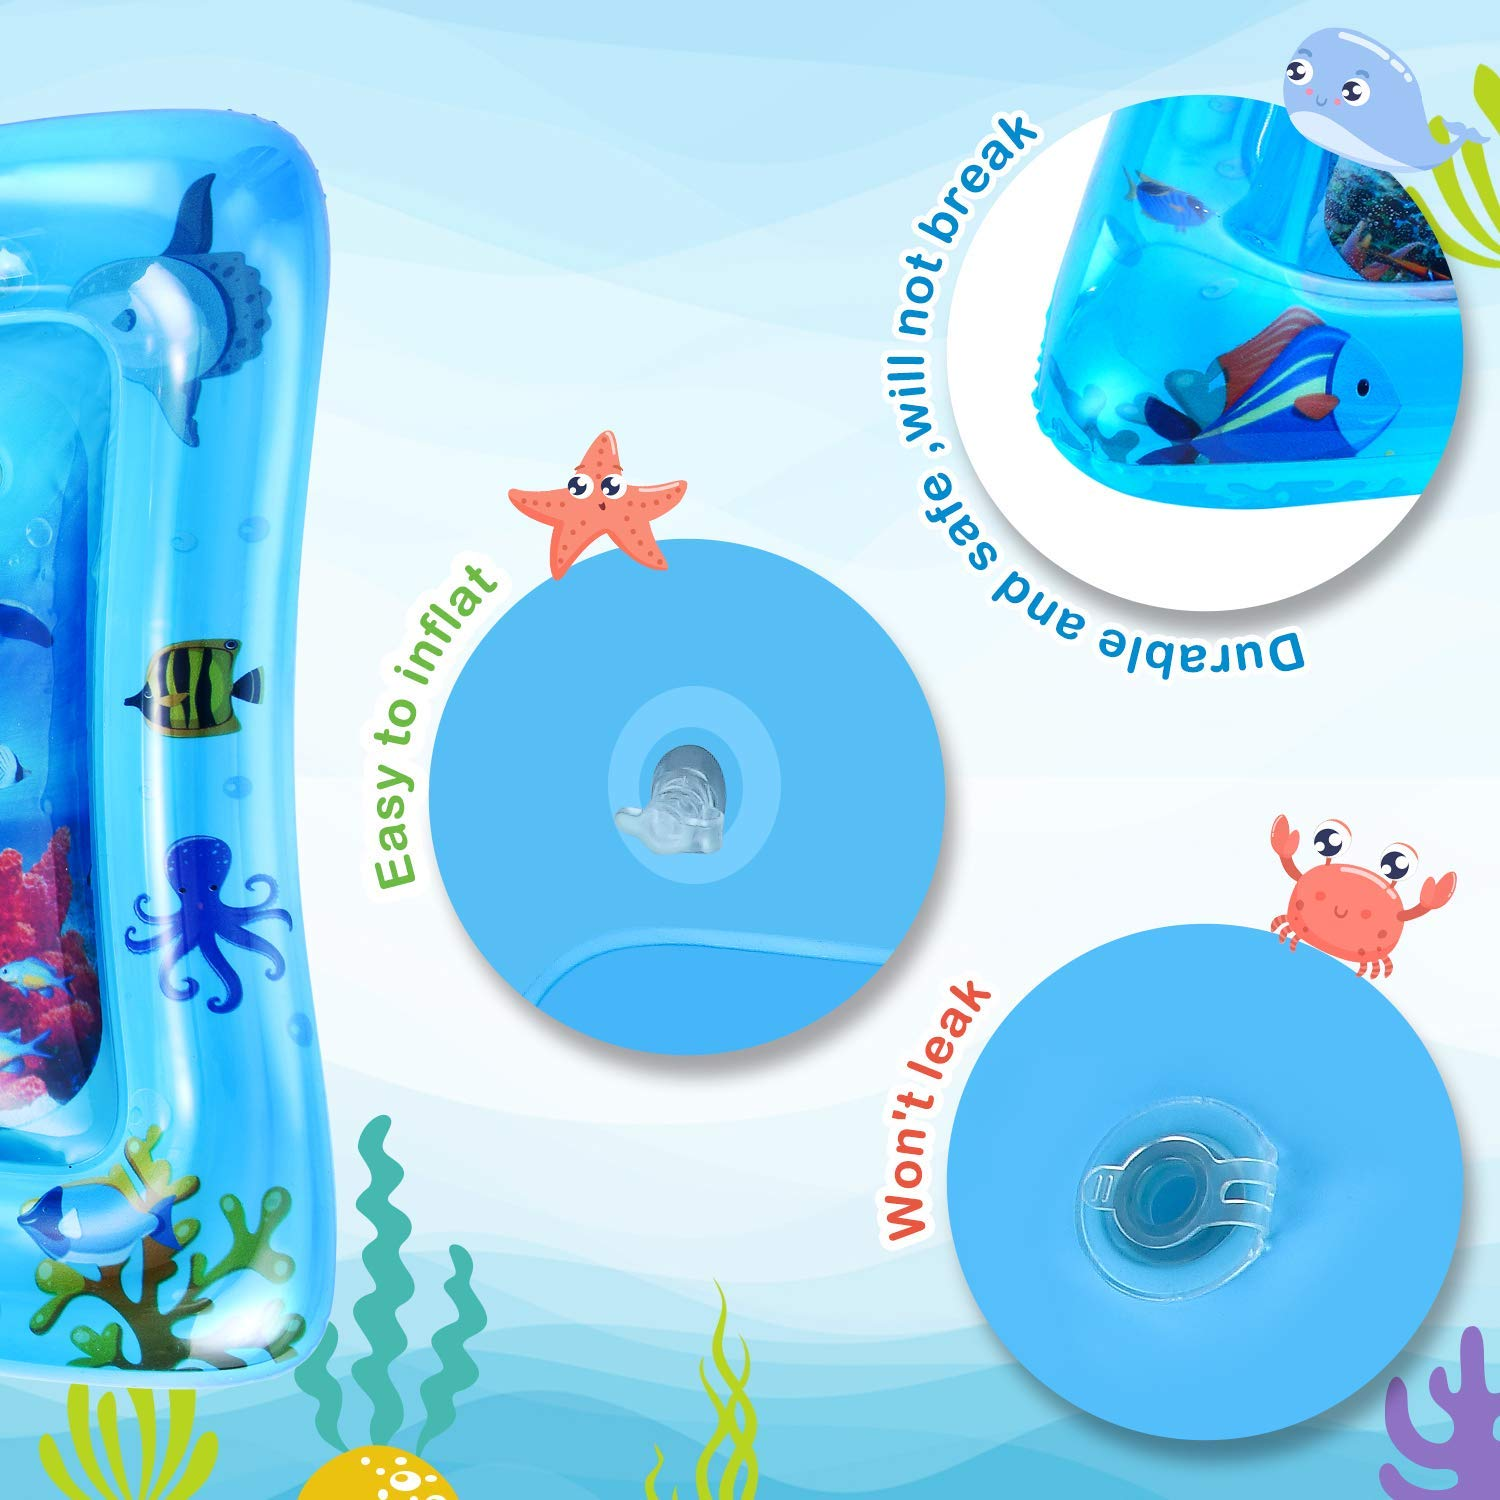 Inflatable Play Mat Infant Toy for 3 6 9 to 12 Months Baby Boy// Girl Babys Birthday Gifts LUKAT Tummy Time Baby Water Mat Baby Toys /& Toddlers Fun Activity Play Center